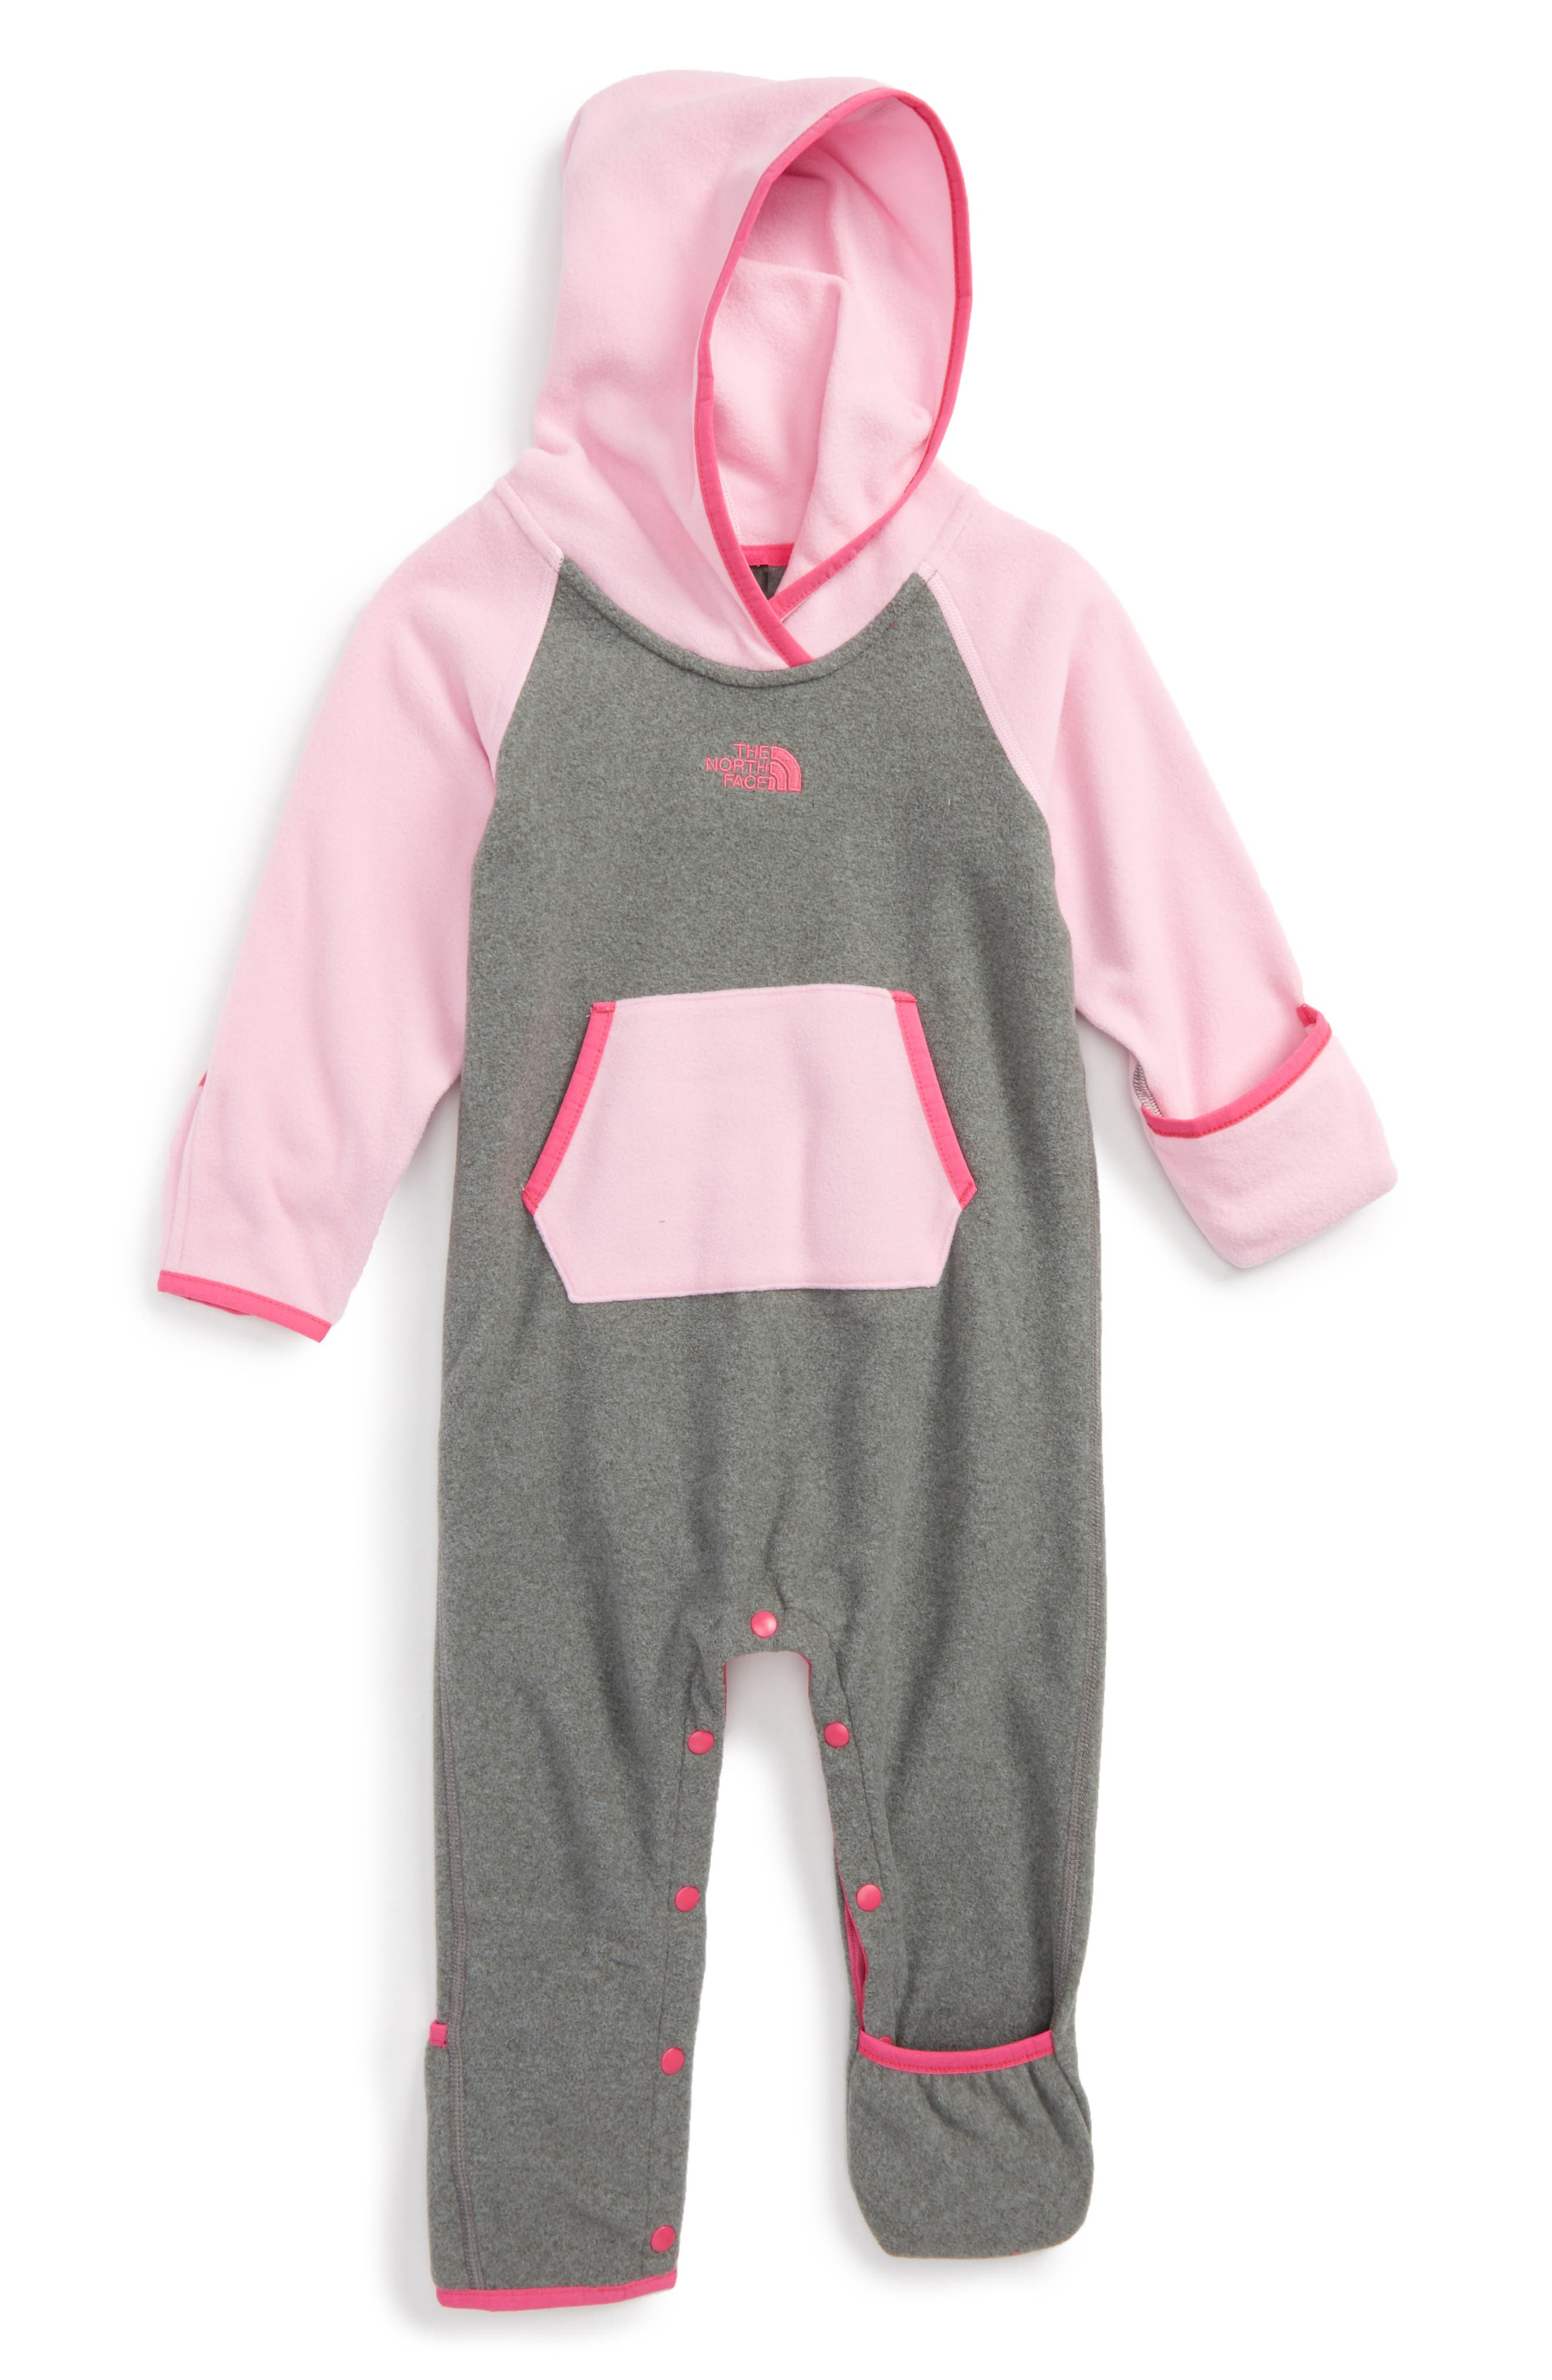 Alternate Image 1 Selected - The North Face 'Glacier' One-Piece (Baby Girls)